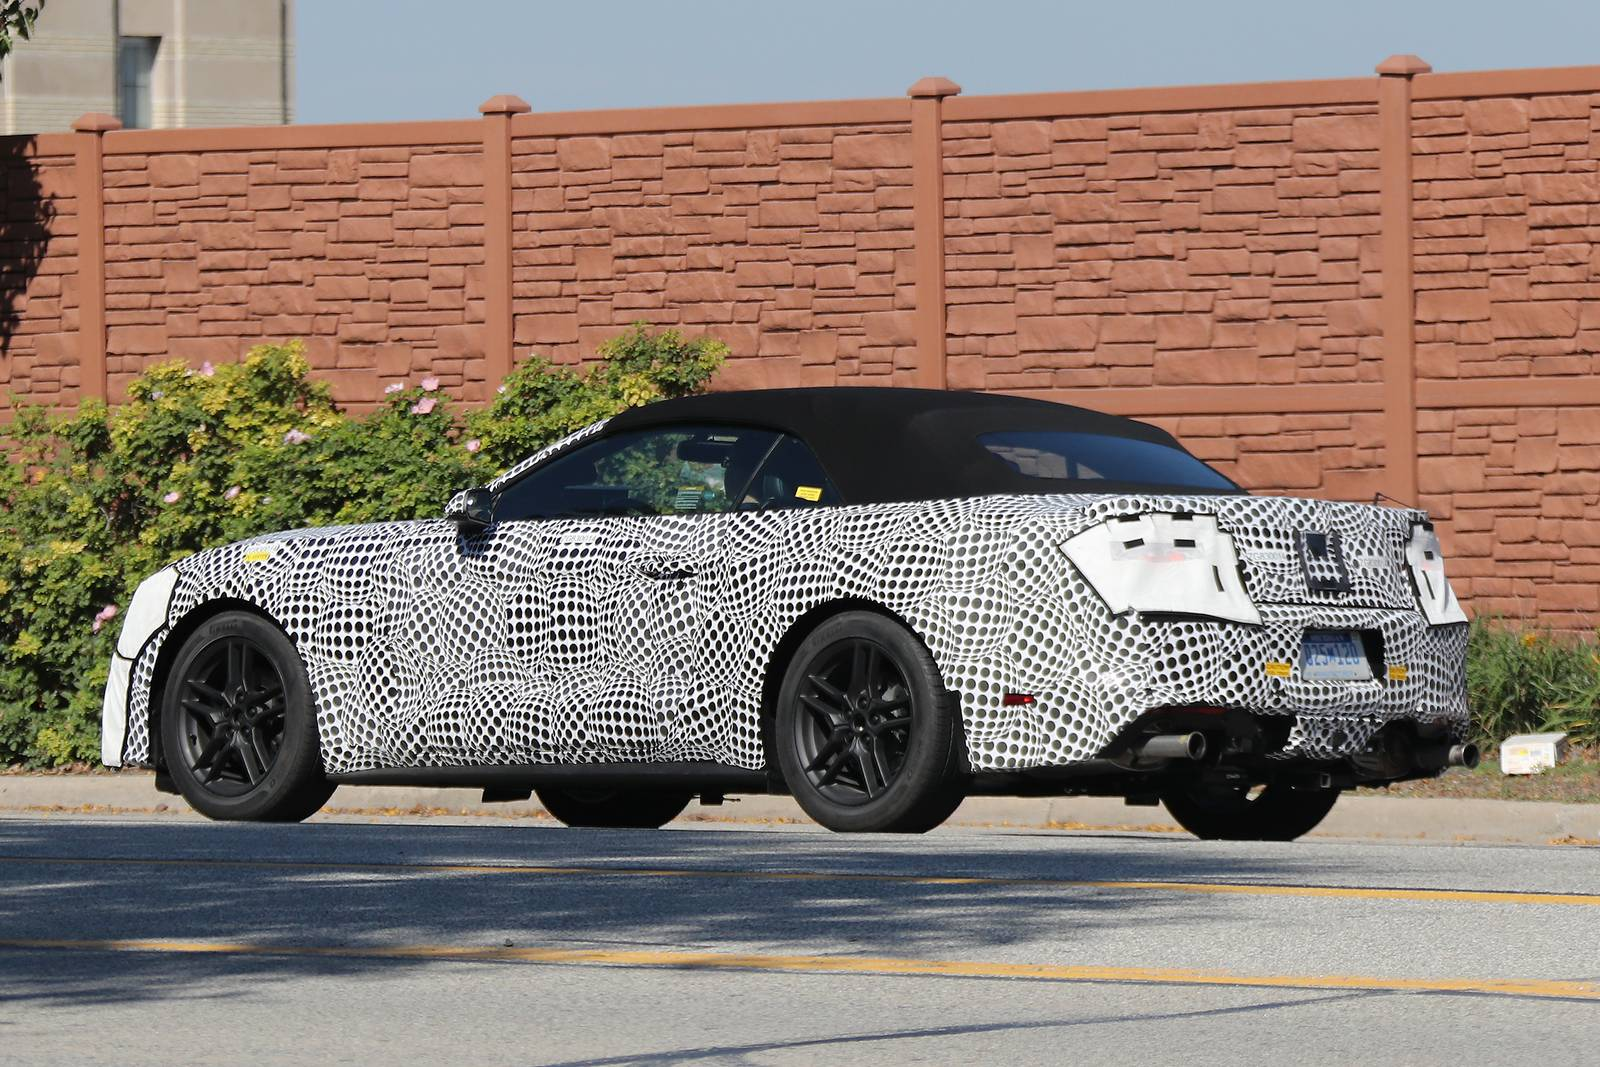 2018 Ford Mustang Convertible Spy Shots Gtspirit